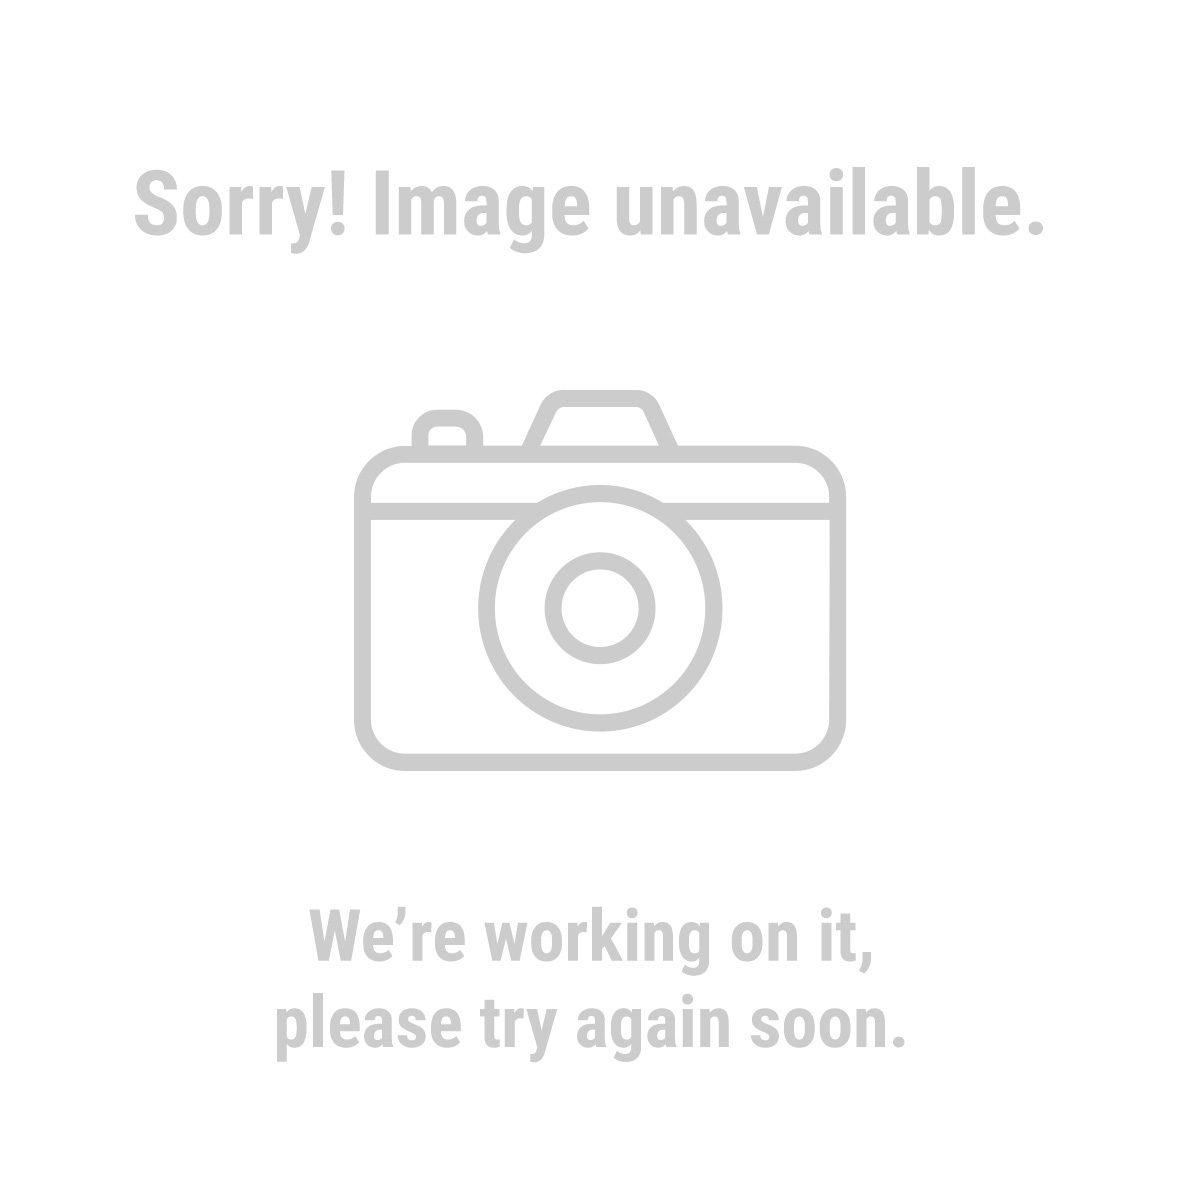 Central Pneumatic® 62802 10 gal 2.5 HP 125 PSI Oil Lube Air Compressor